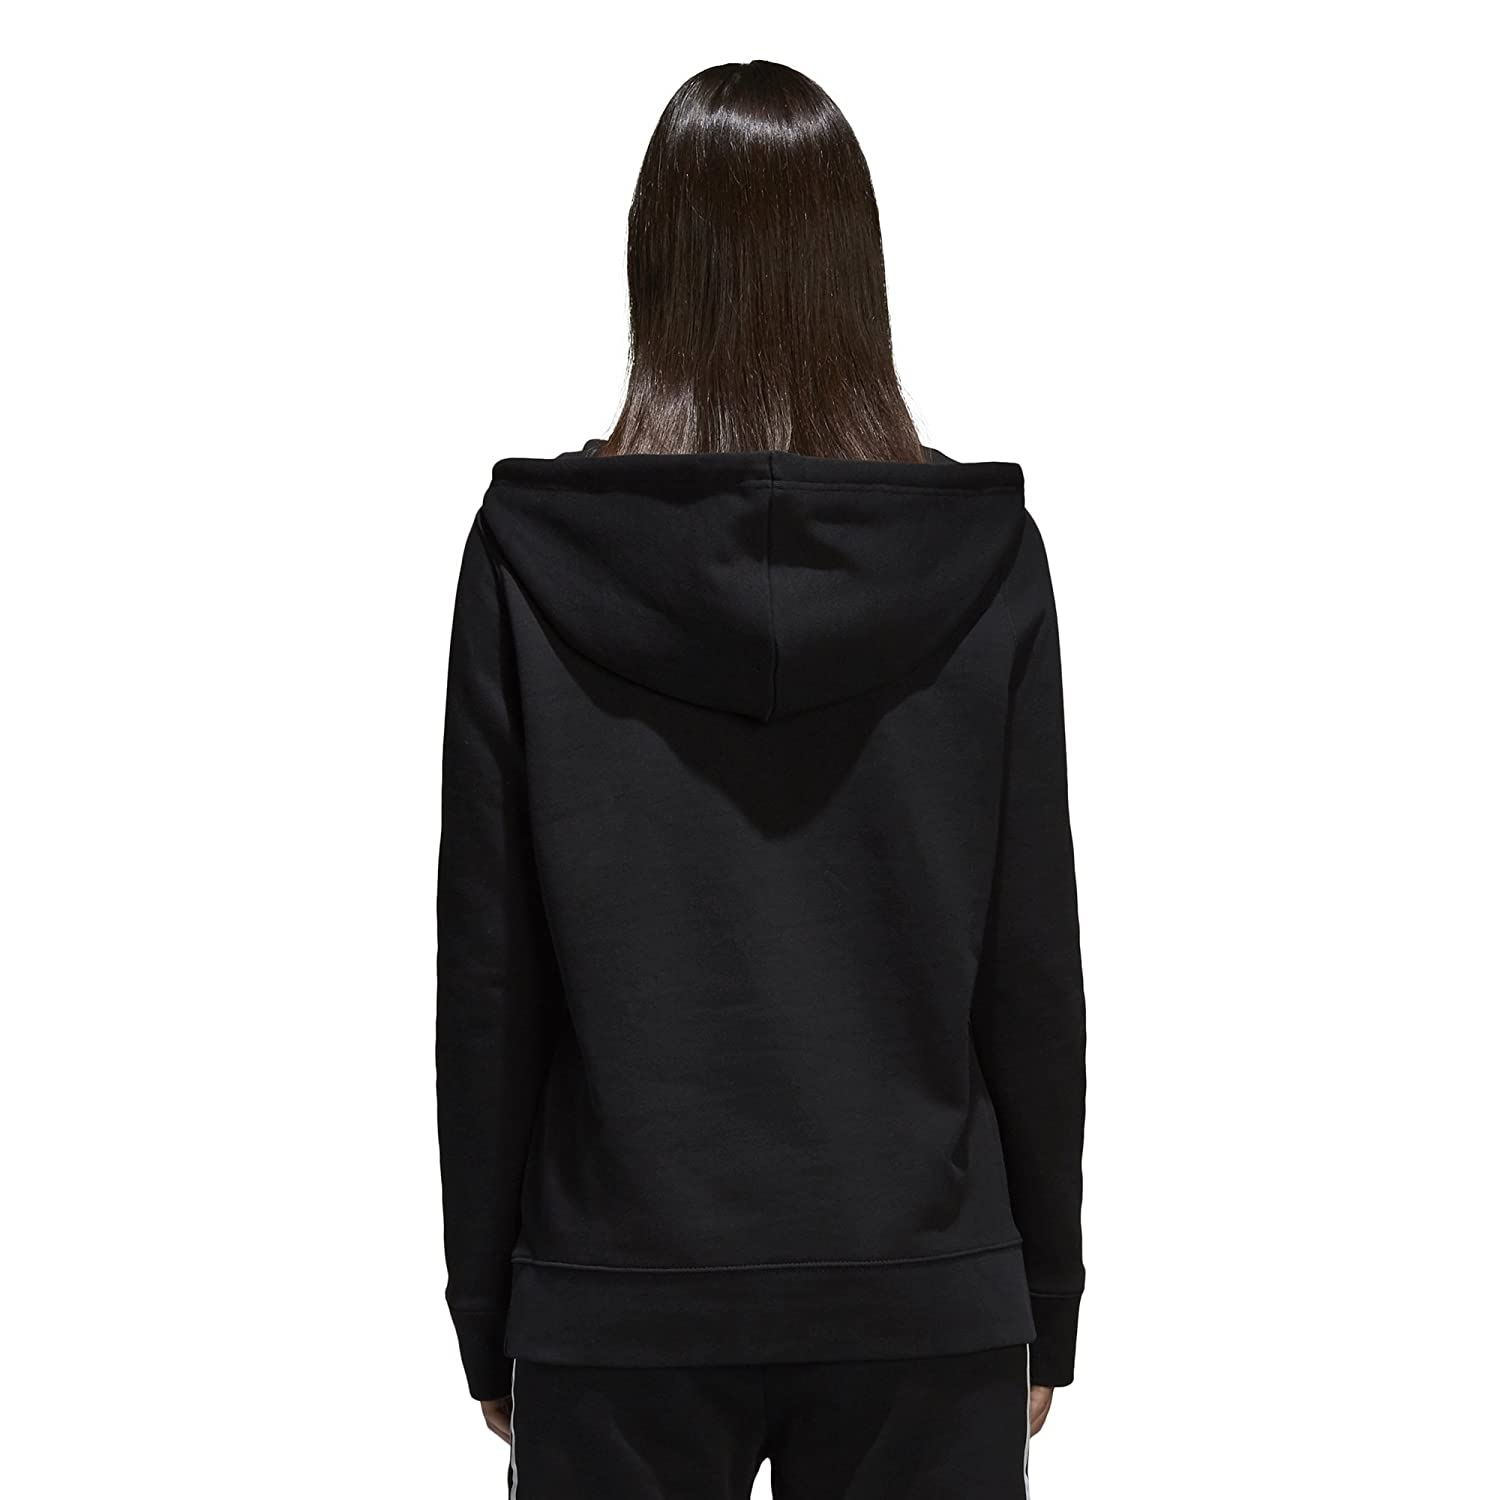 a8a8ce05a87 adidas Originals Women's Trefoil Hoodie at Amazon Women's Clothing store: